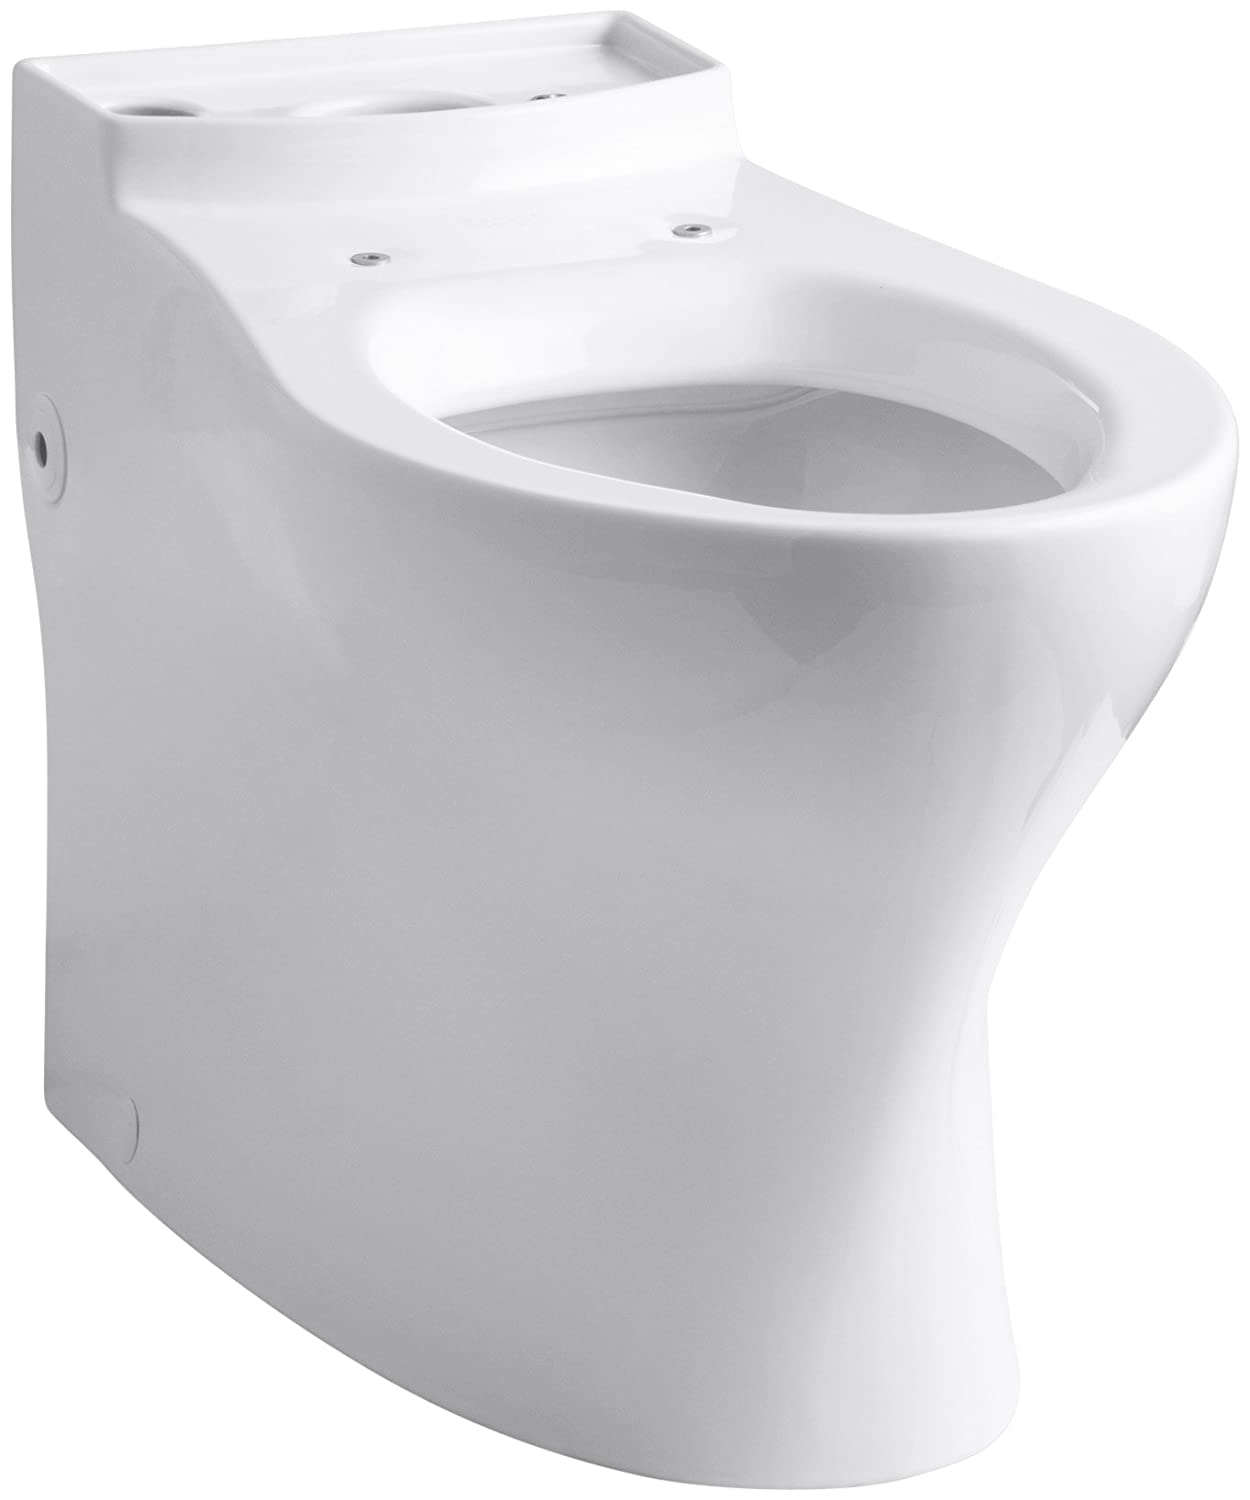 KOHLER K-4353-0 Persuade Curv Comfort Height Elongated Bowl, White cheap